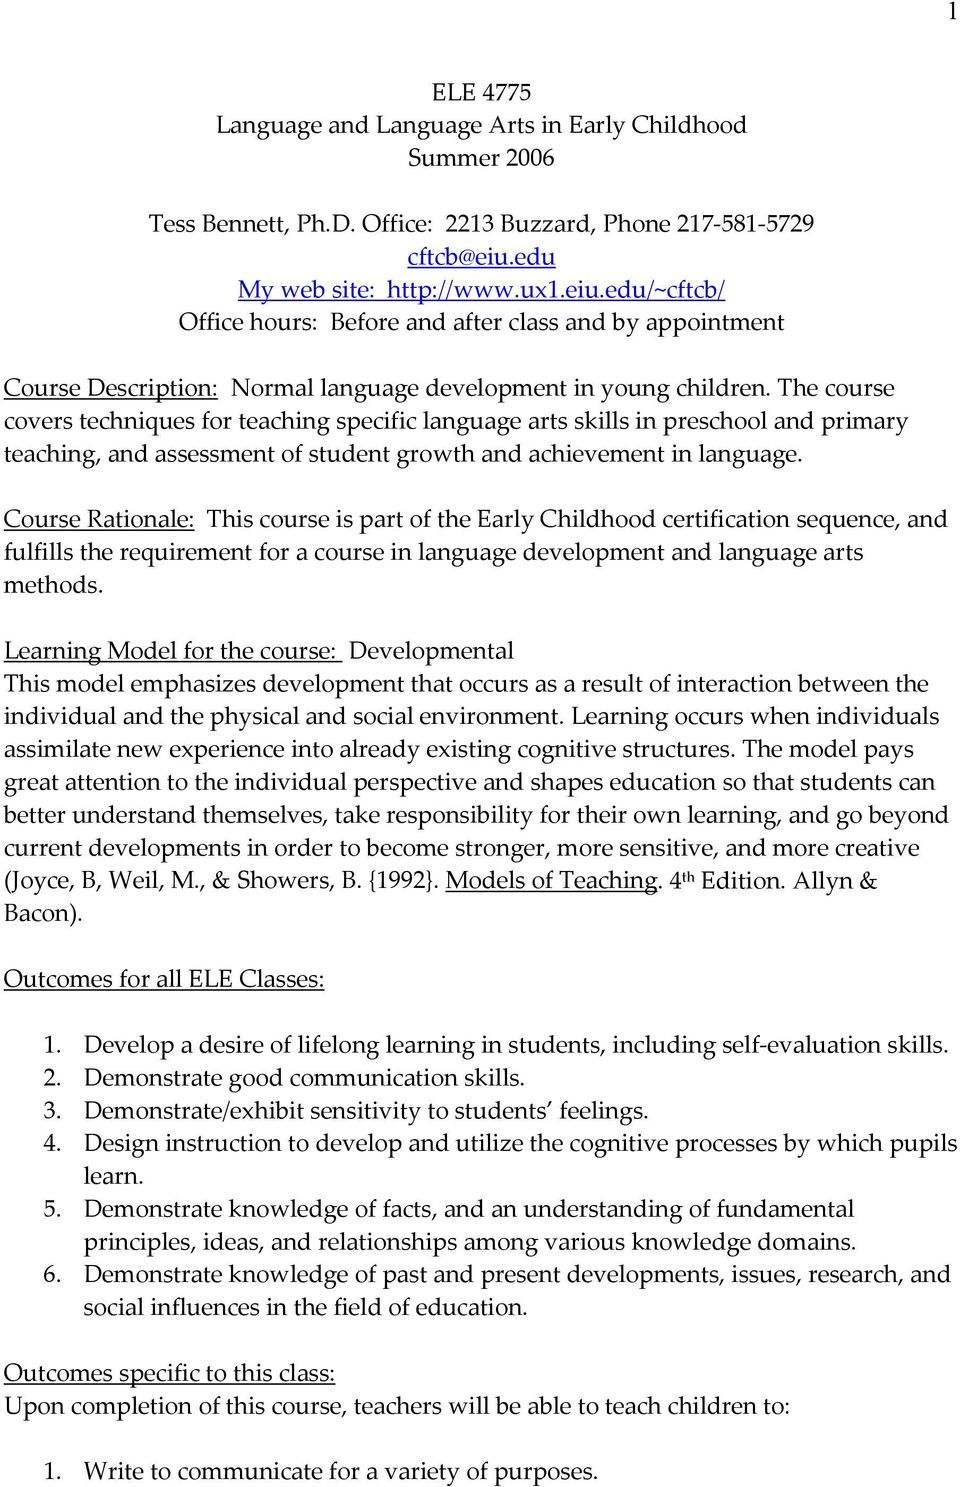 The course covers techniques for teaching specific language arts skills in preschool and primary teaching, and assessment of student growth and achievement in language.